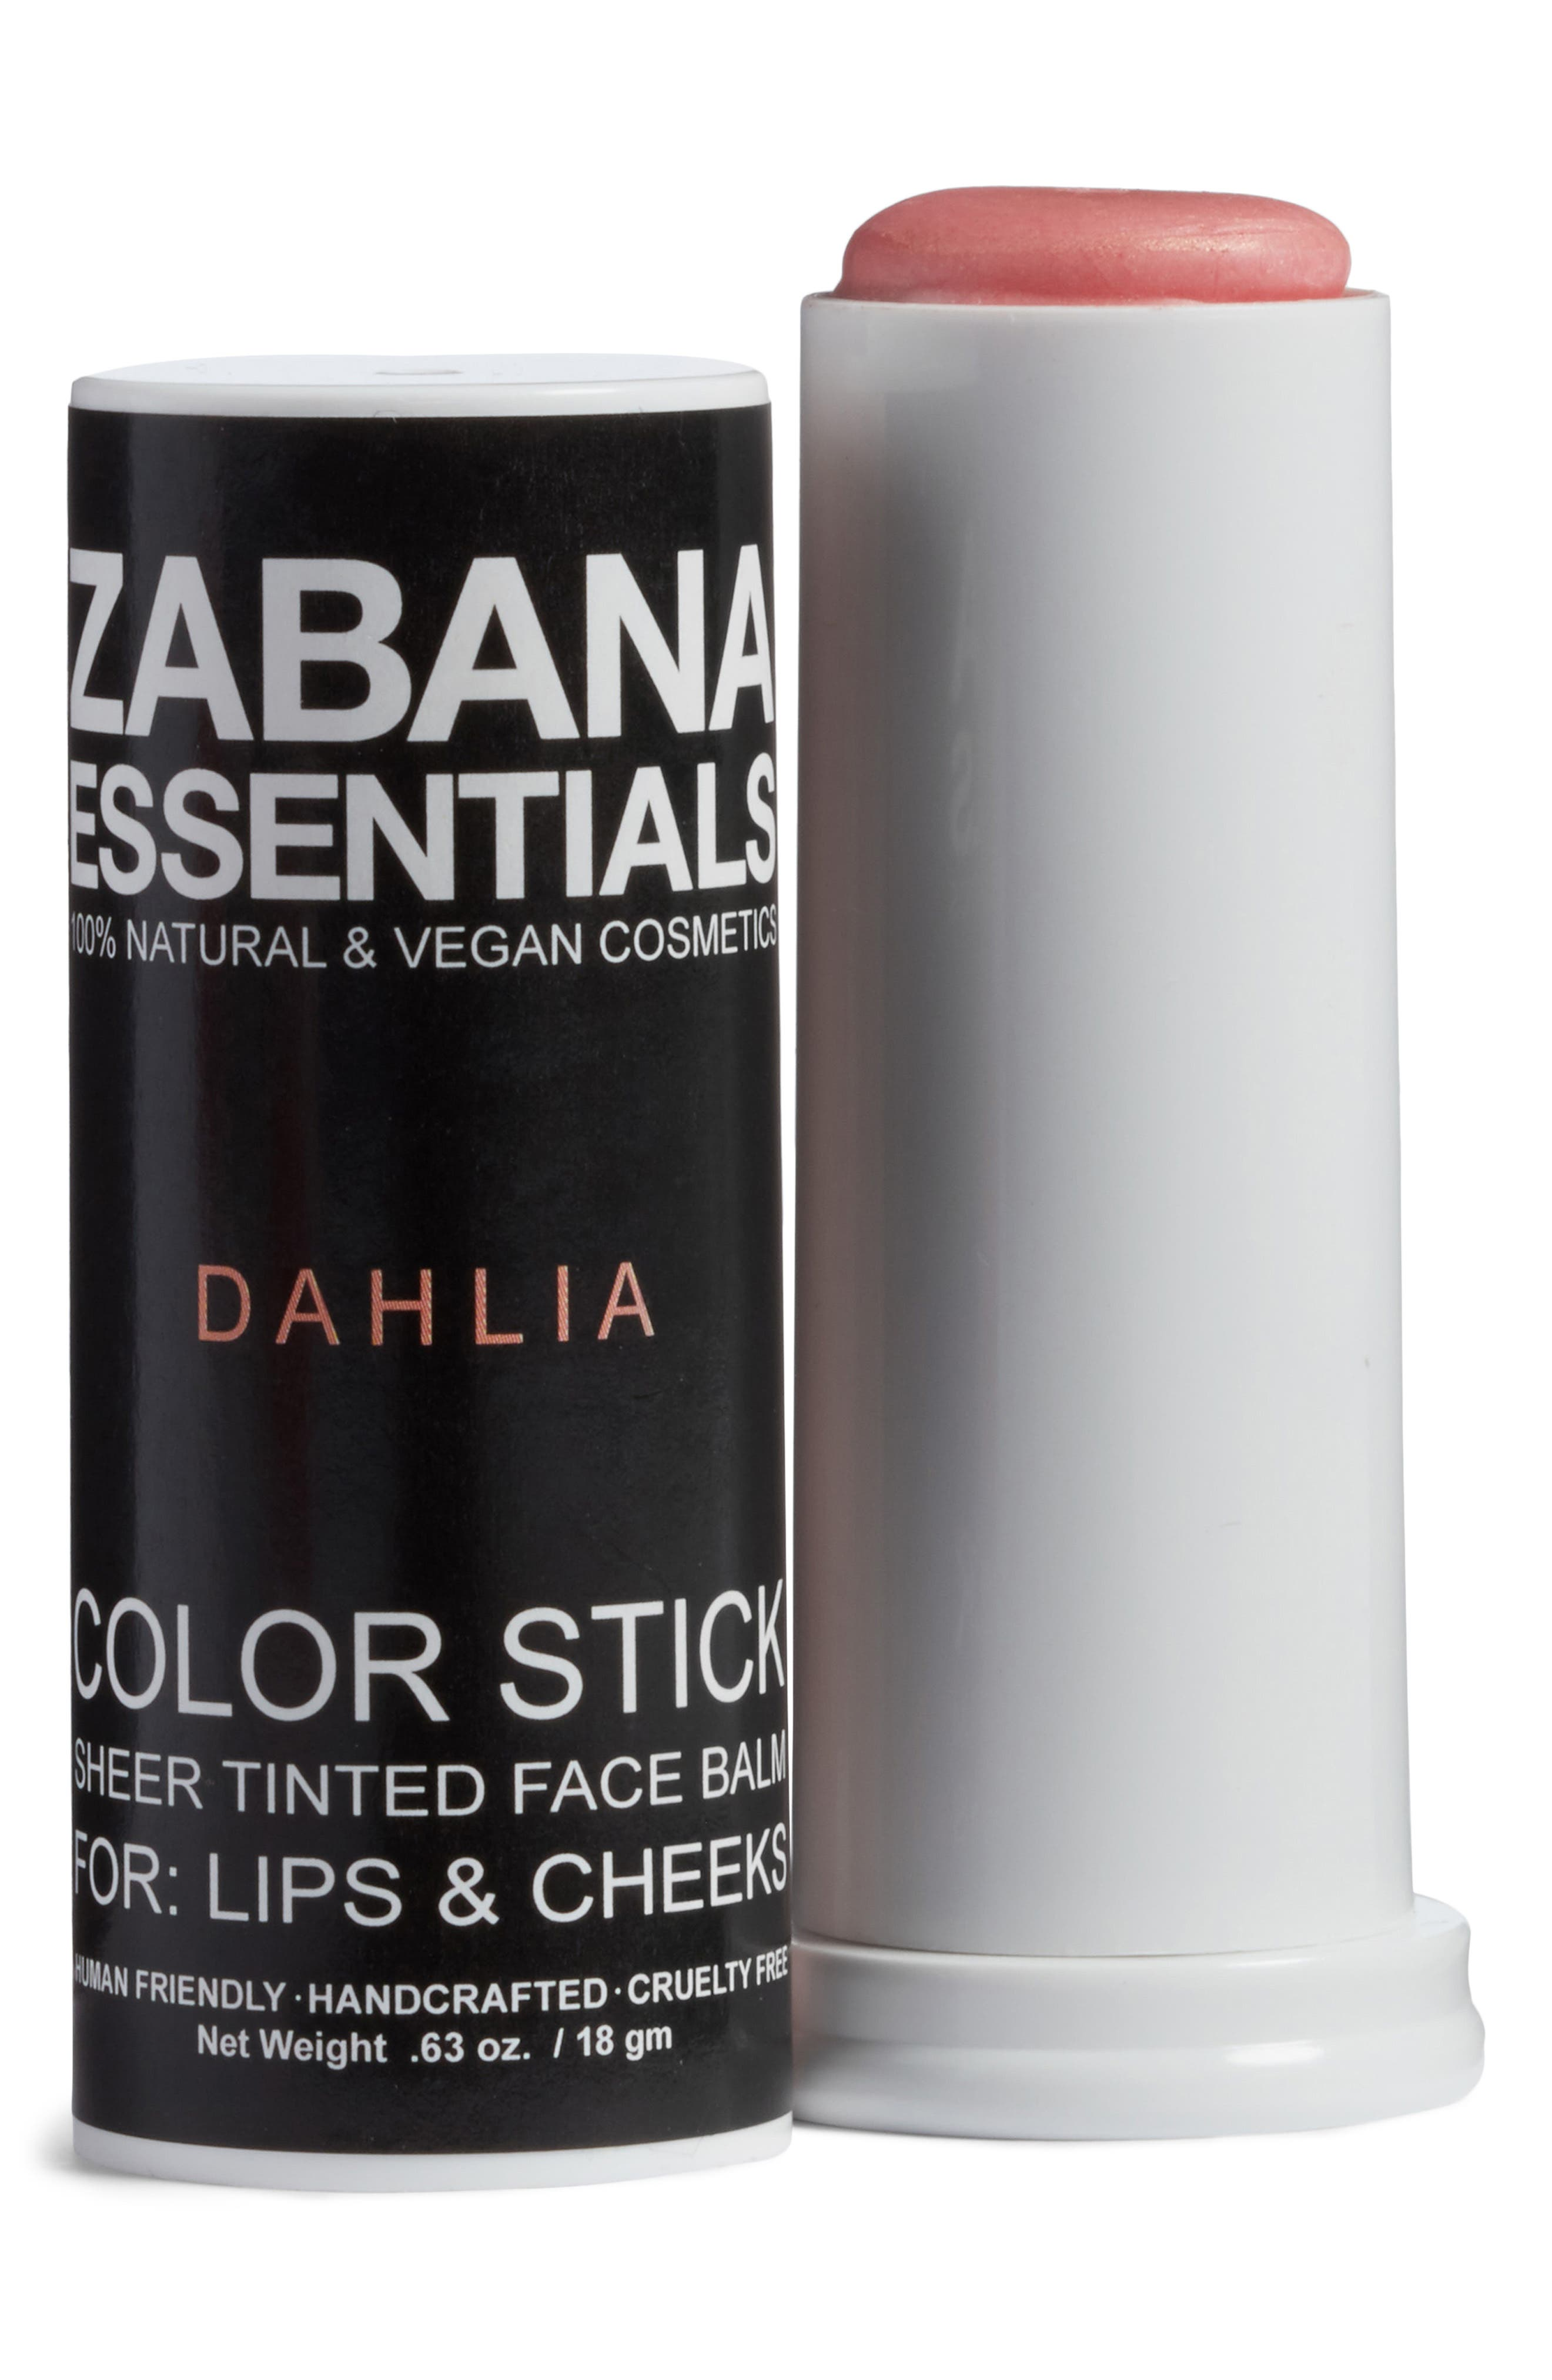 Alternate Image 1 Selected - Zabana Essentials Color Stick Sheer Tinted Lip & Cheek Balm